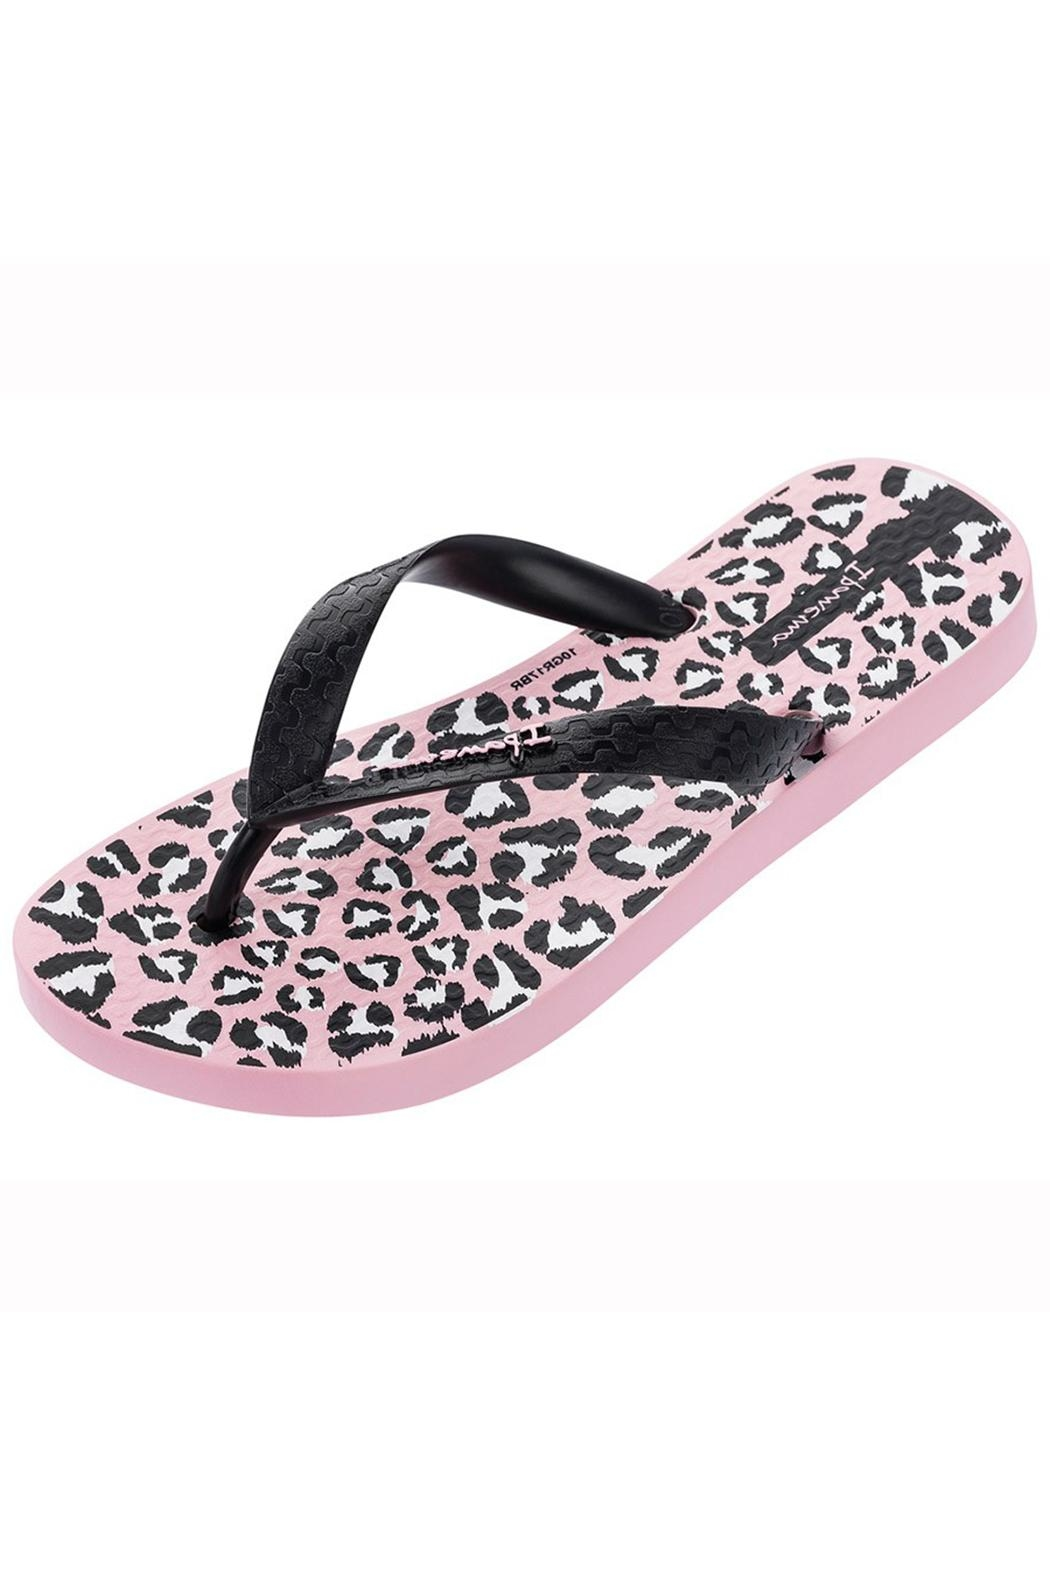 Cheetah Vegas Shoptiques R Sandal By — Ipanema Kid's Las d From 8NnwOv0m